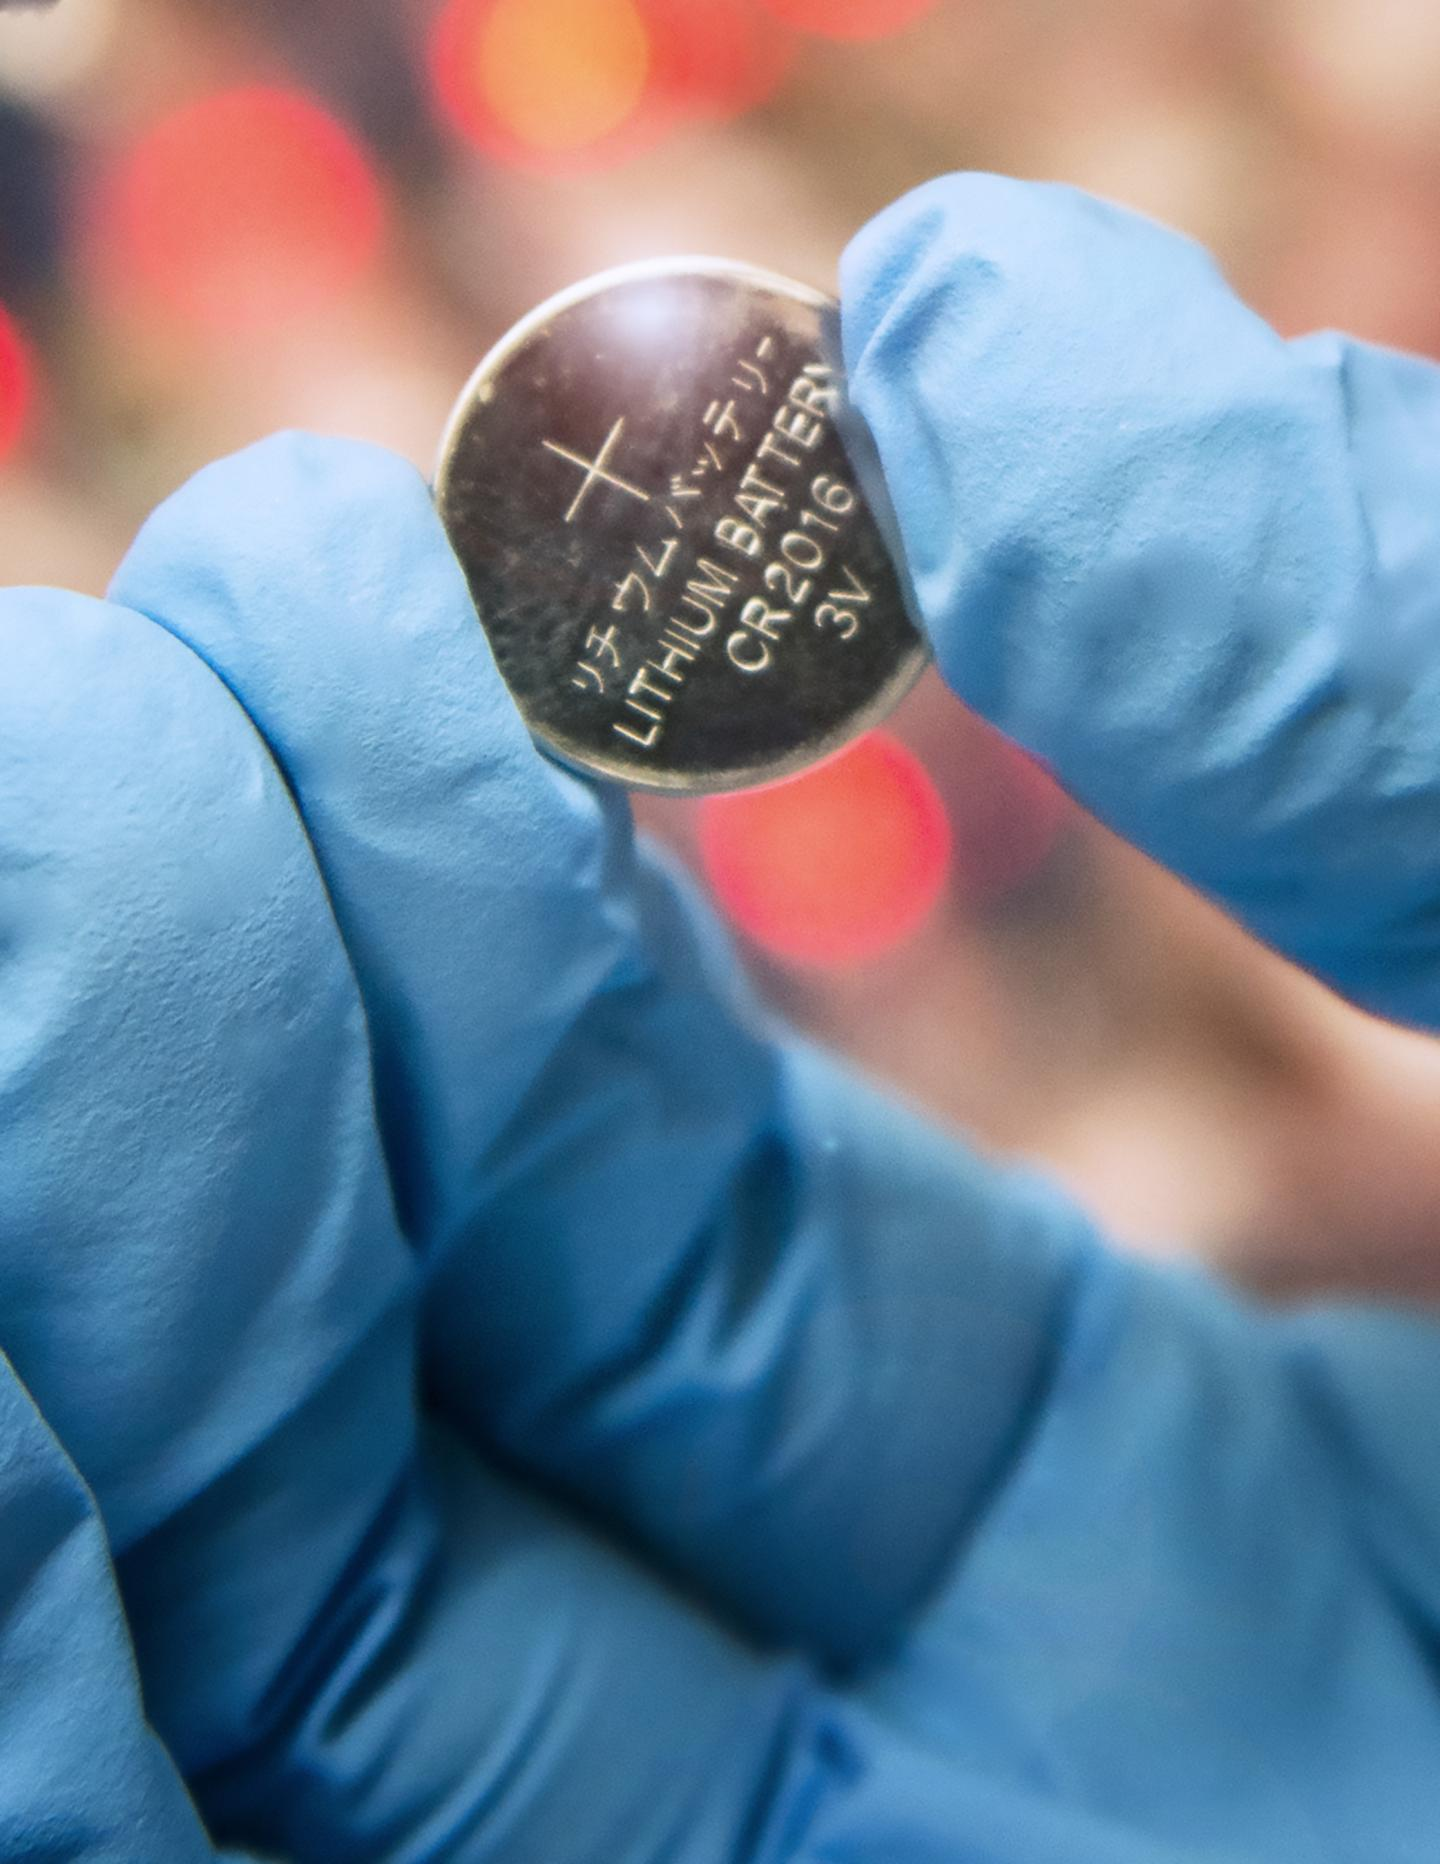 This is one of the lithium sulfur coin batteries being developed in Penn State's Energy Nanostructure Laboratory (E-Nano). (Patrick Mansell, Penn State)